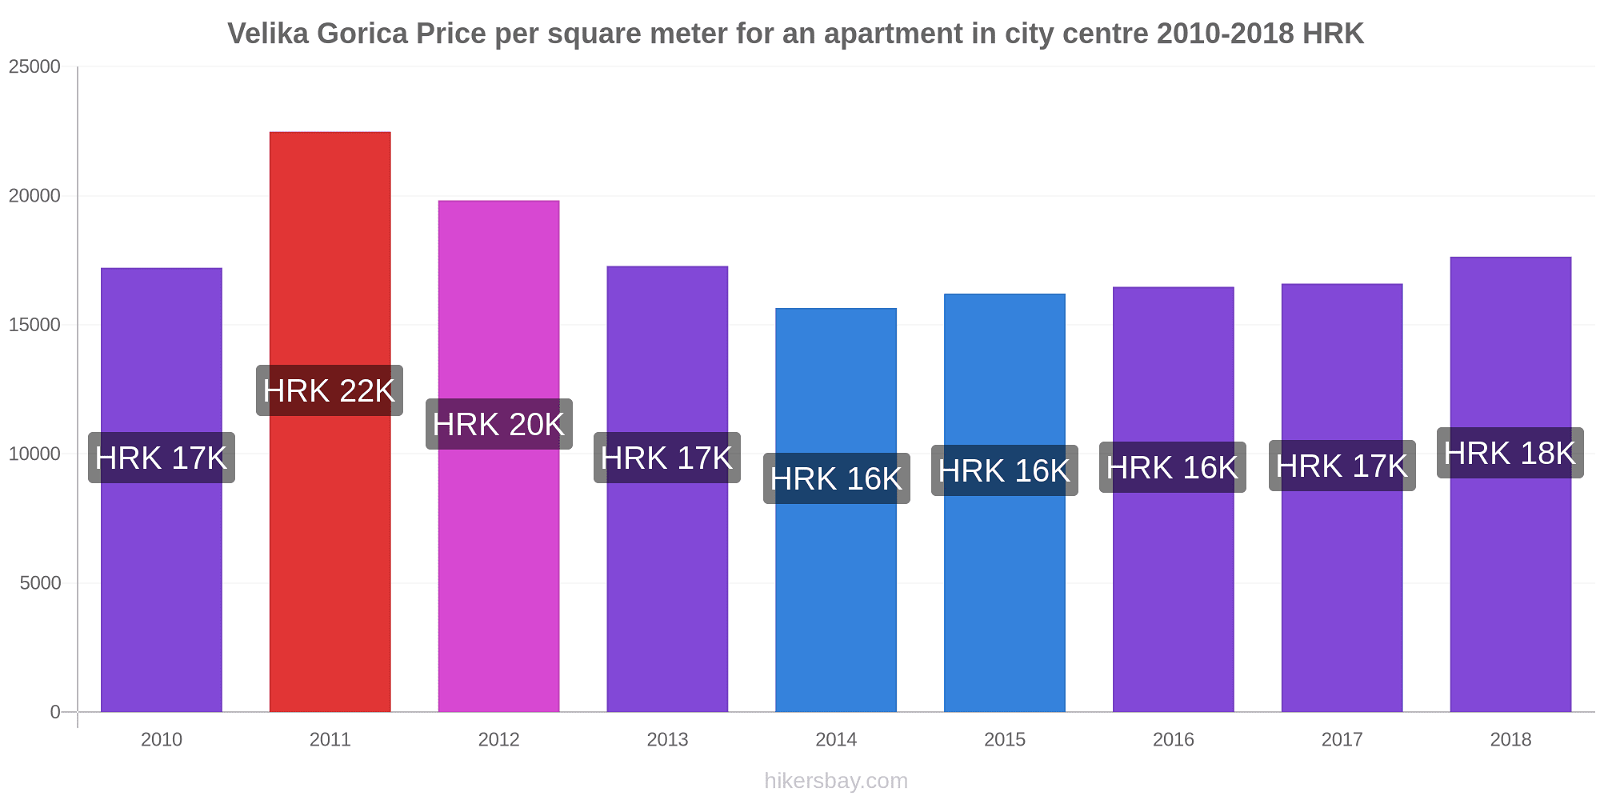 Velika Gorica price changes Price per square meter for an apartment in city centre hikersbay.com